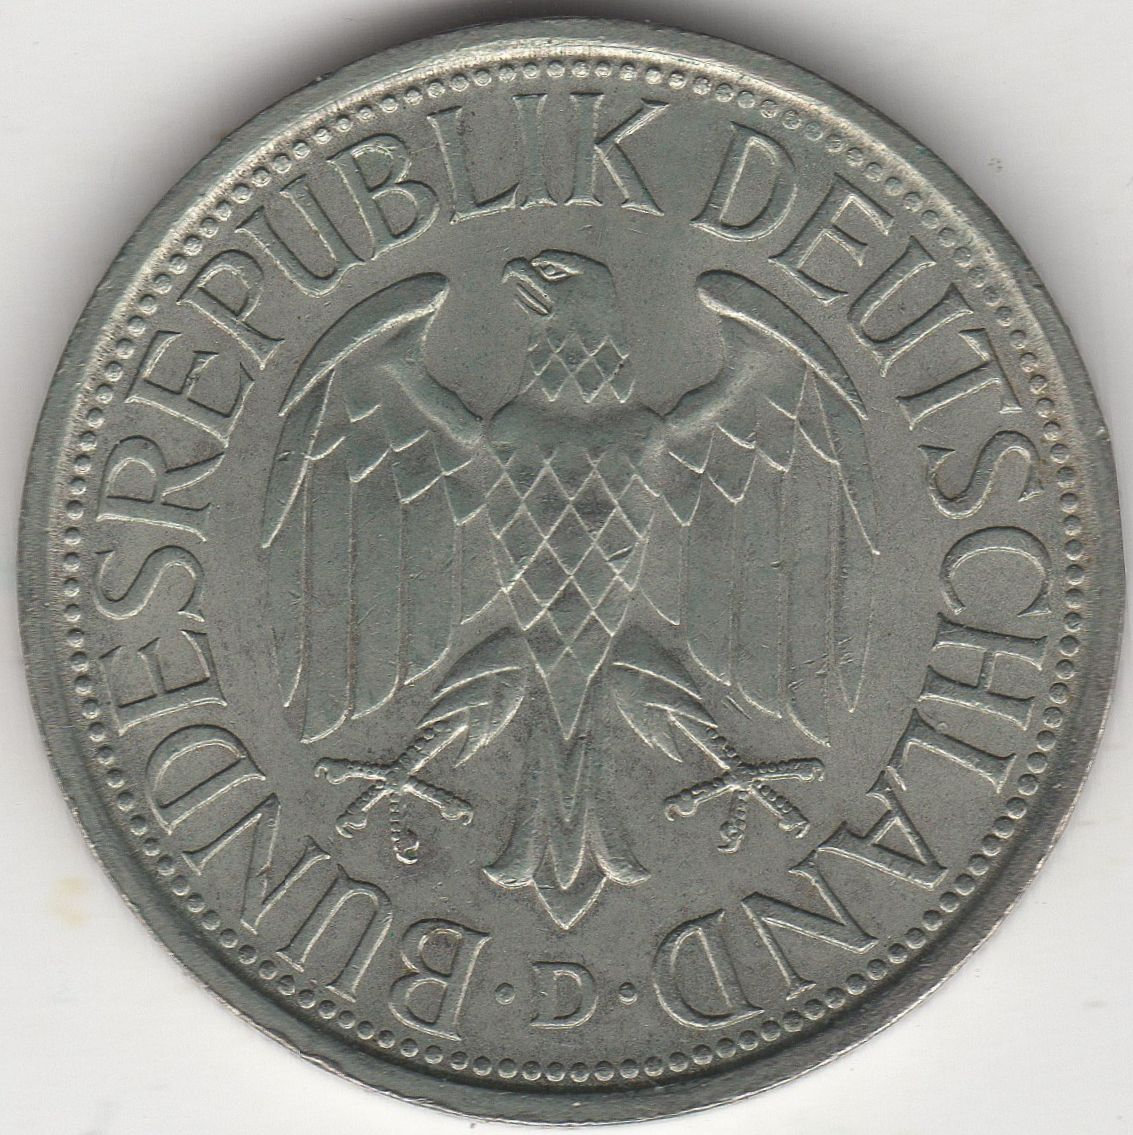 1978 D Germany 1 Deutsche Mark Coin European Coins